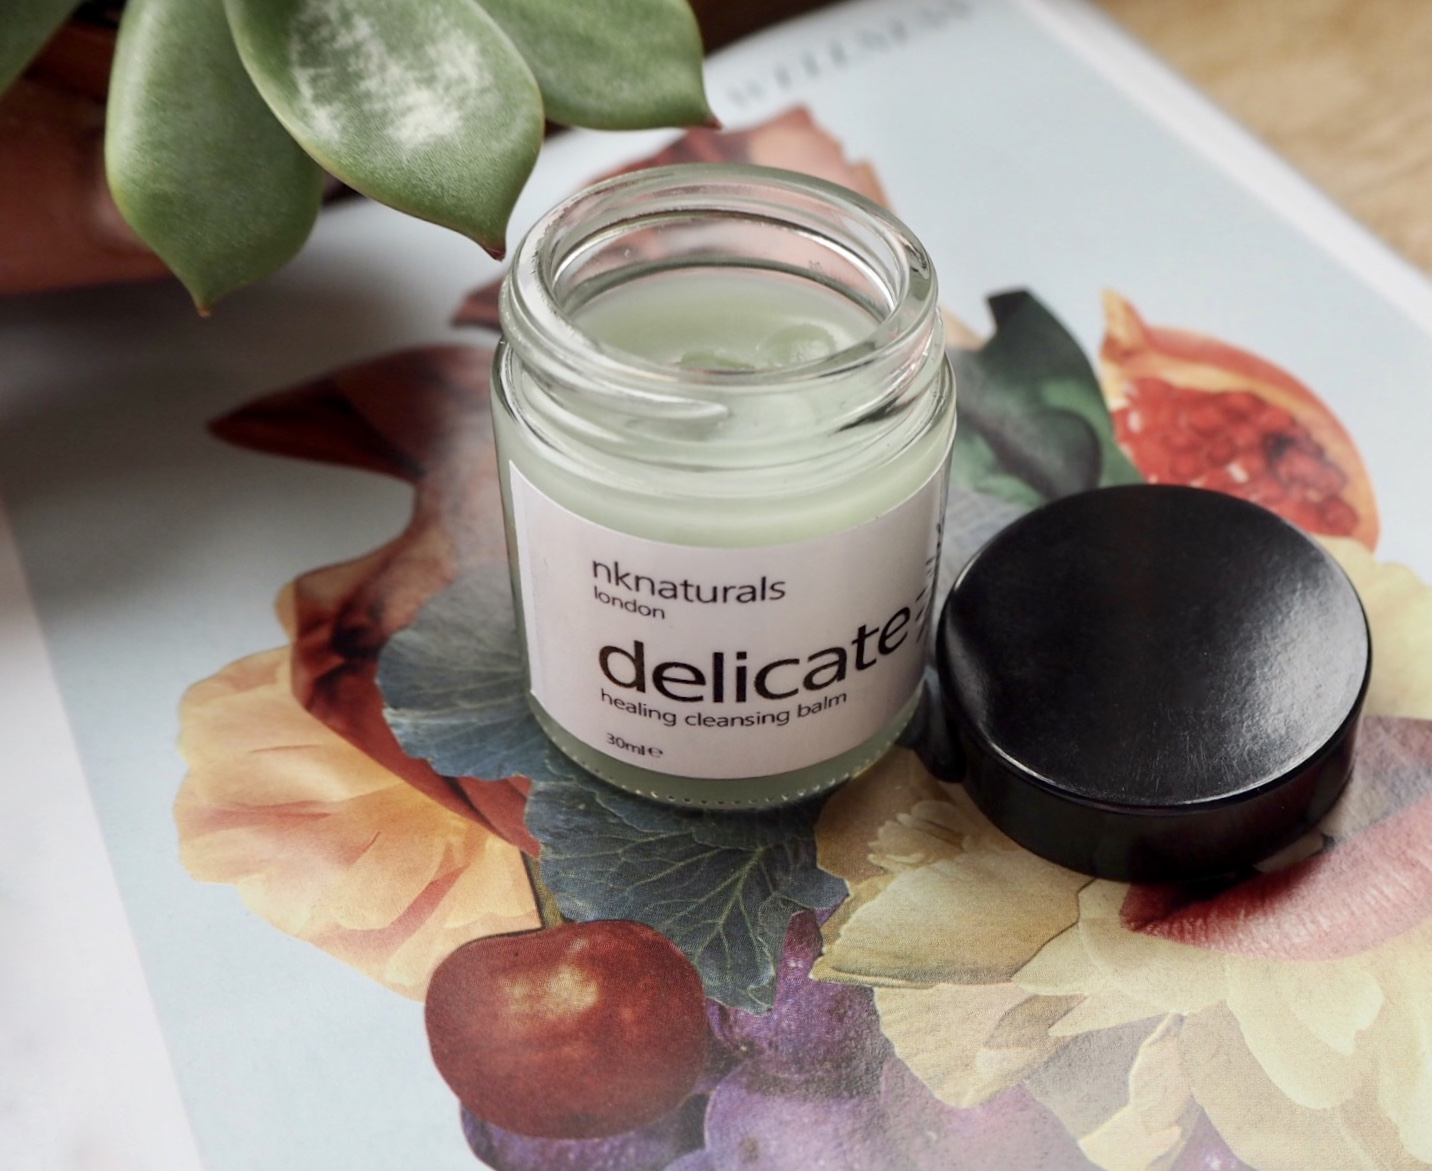 NK naturals delicate cleansing balm